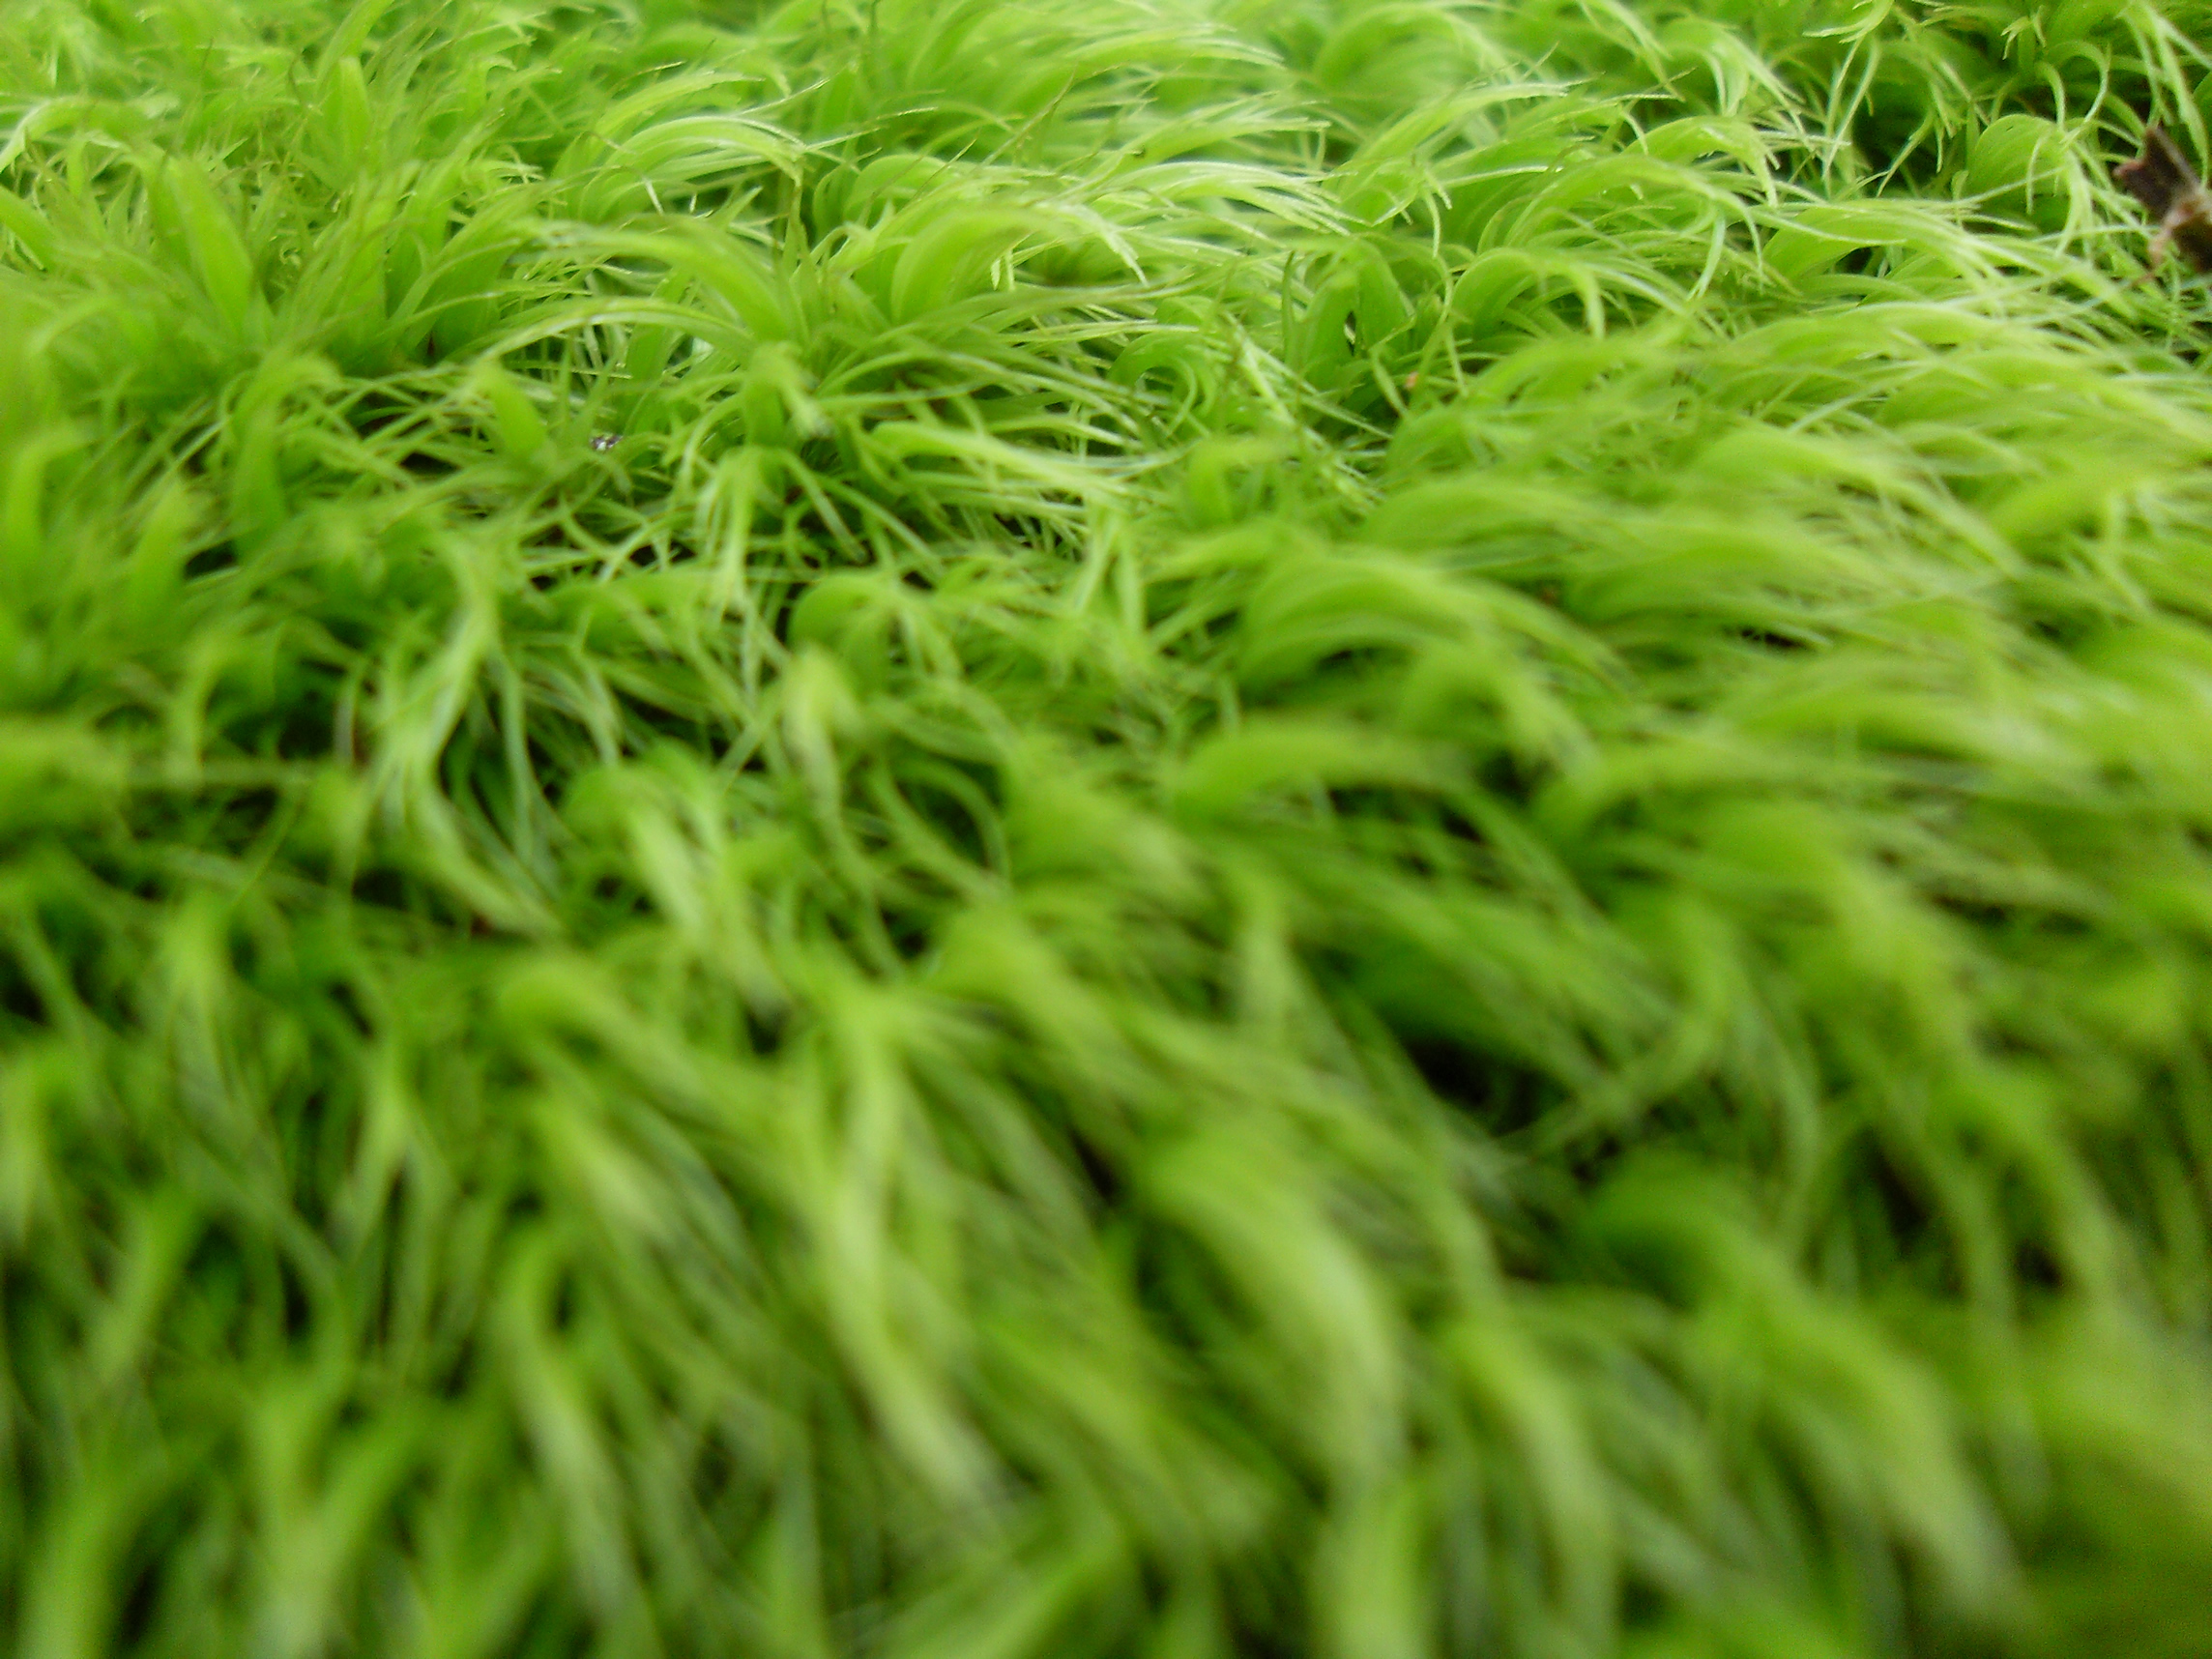 green grass, background, texture, download photo, green grass texture